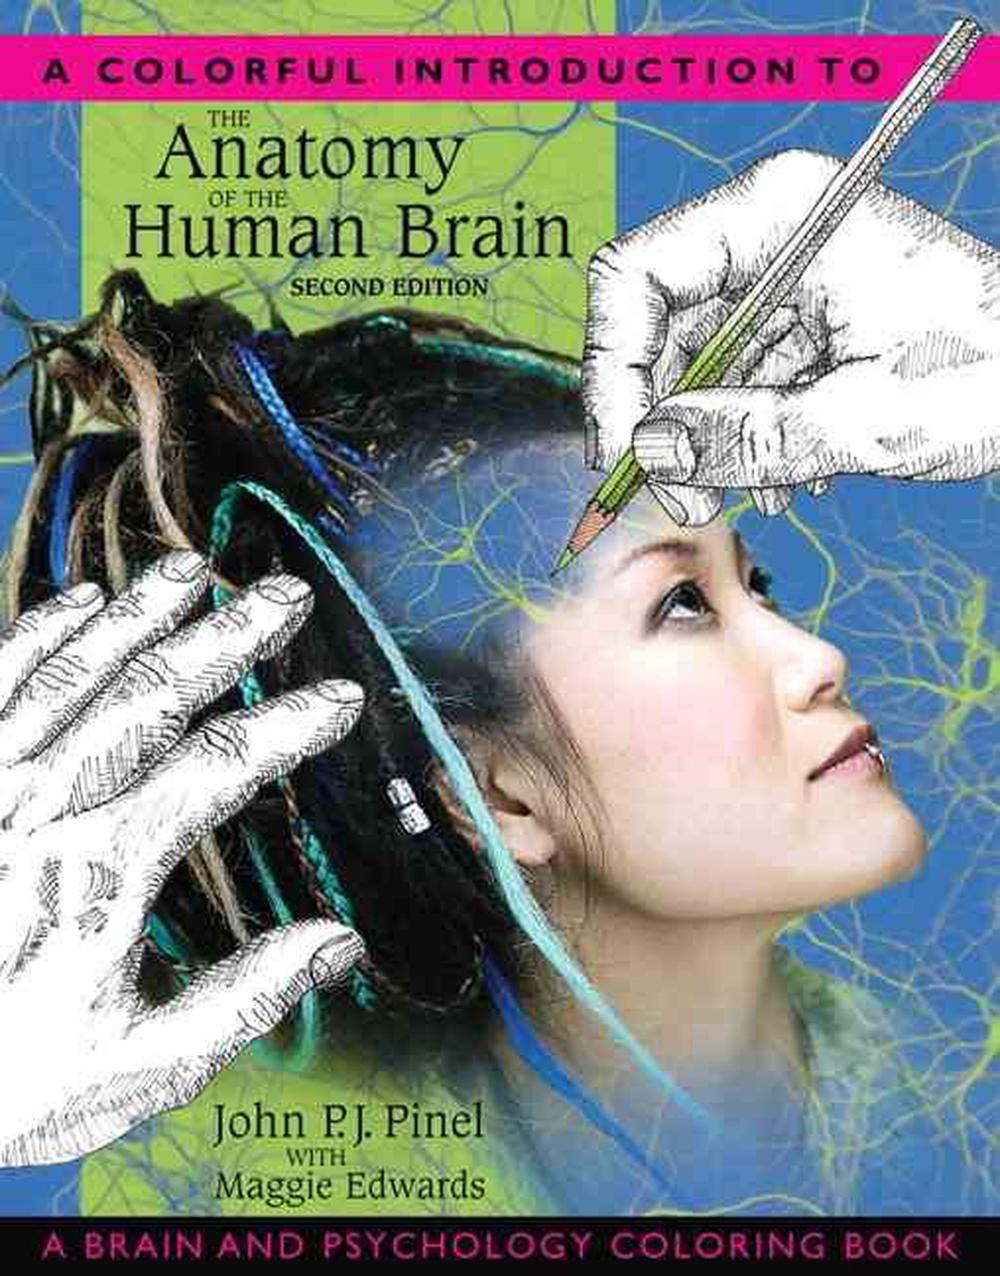 A Colorful Introduction to the Anatomy of the Human Brain: A Brain and Psychology Coloring Book, 2nd Edition